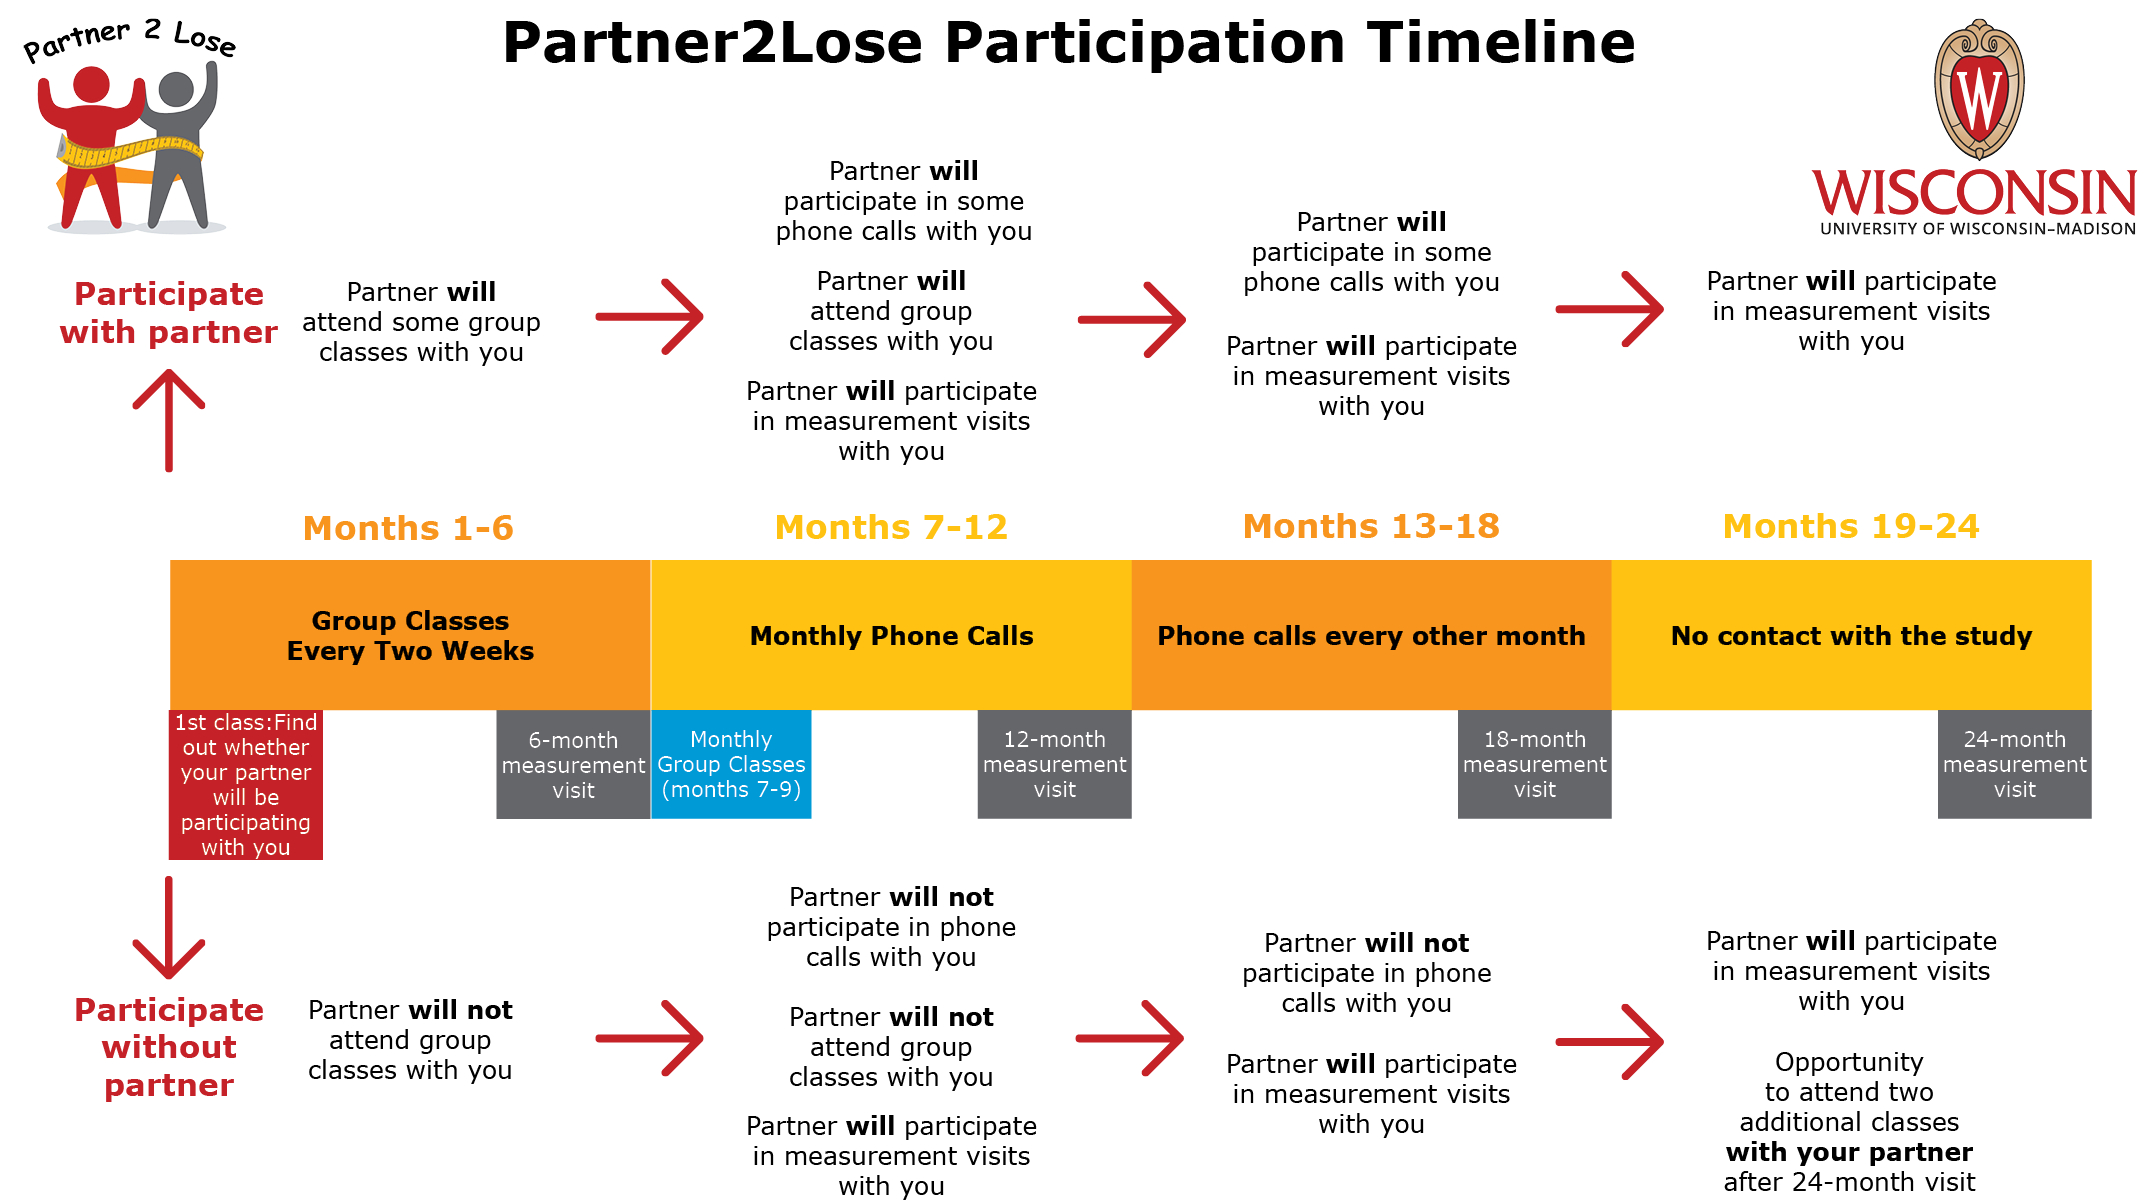 Partner2Lose Participation Timeline